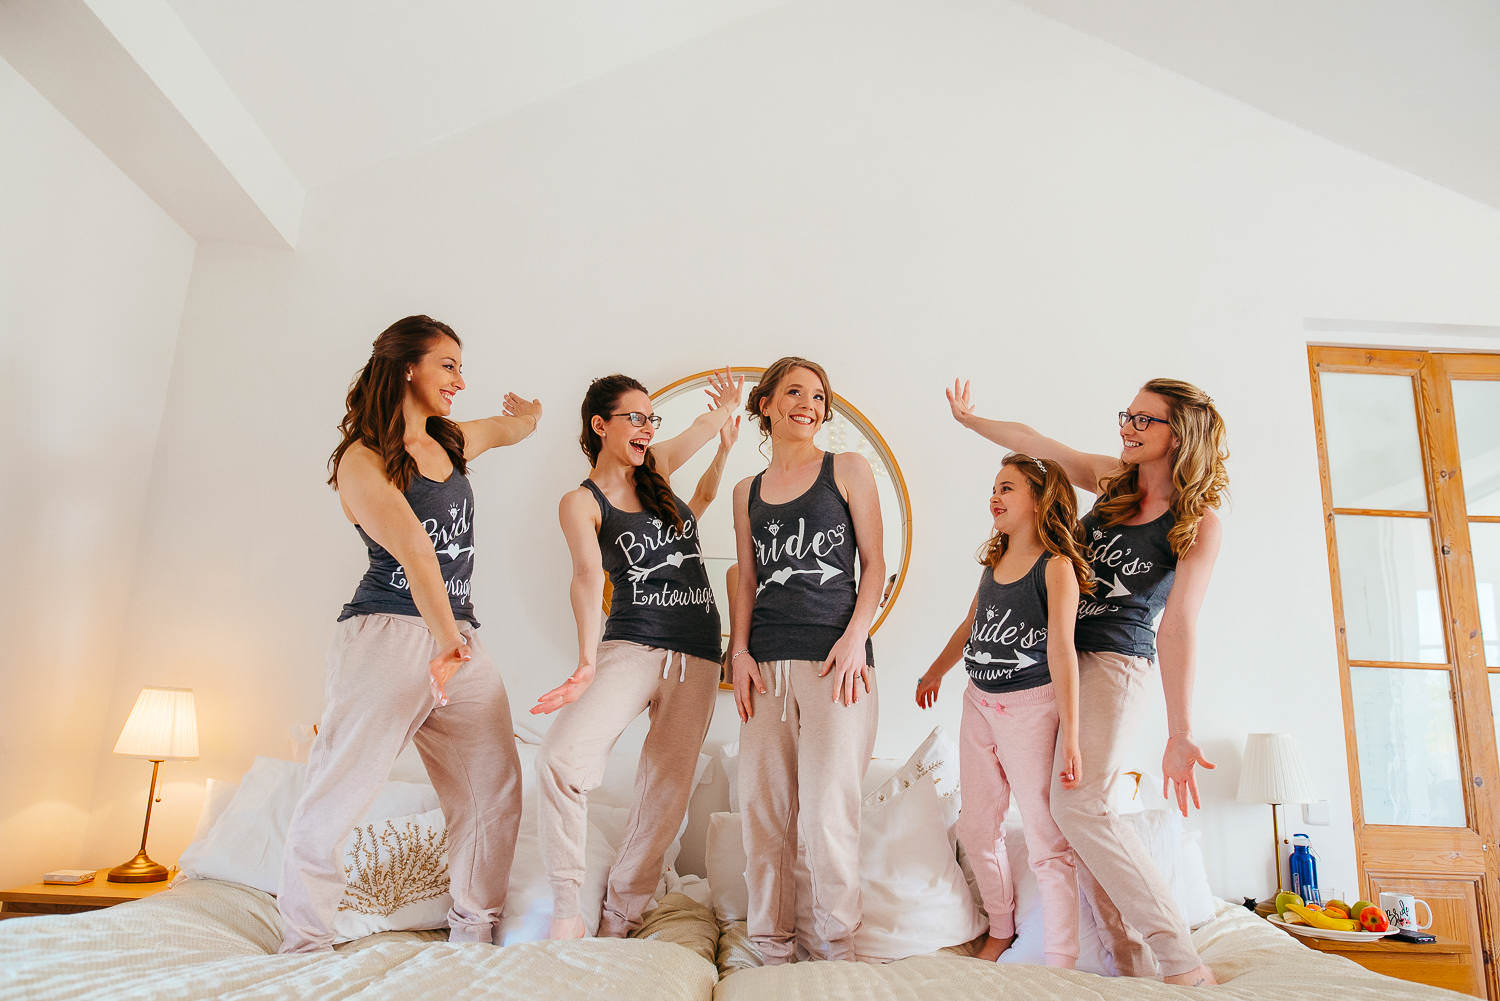 bride's maids helping bride with pre-ceremony preparations documentary wedding photography sitges